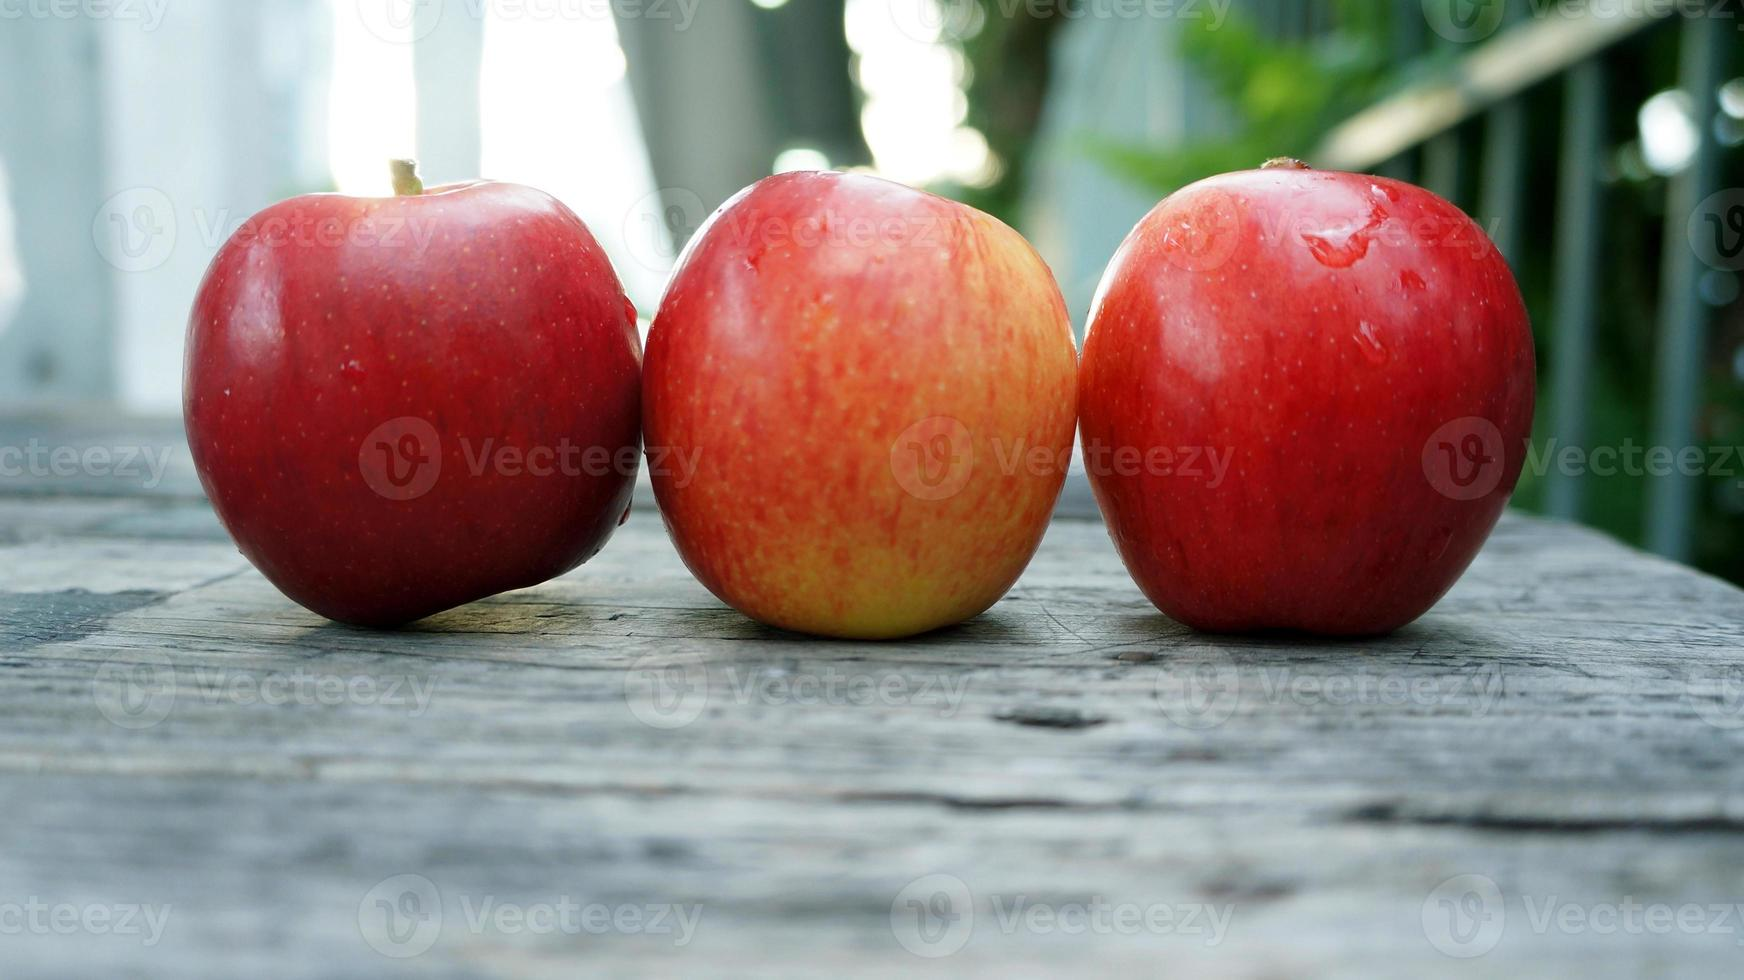 Three Red Apples on the wooden table photo